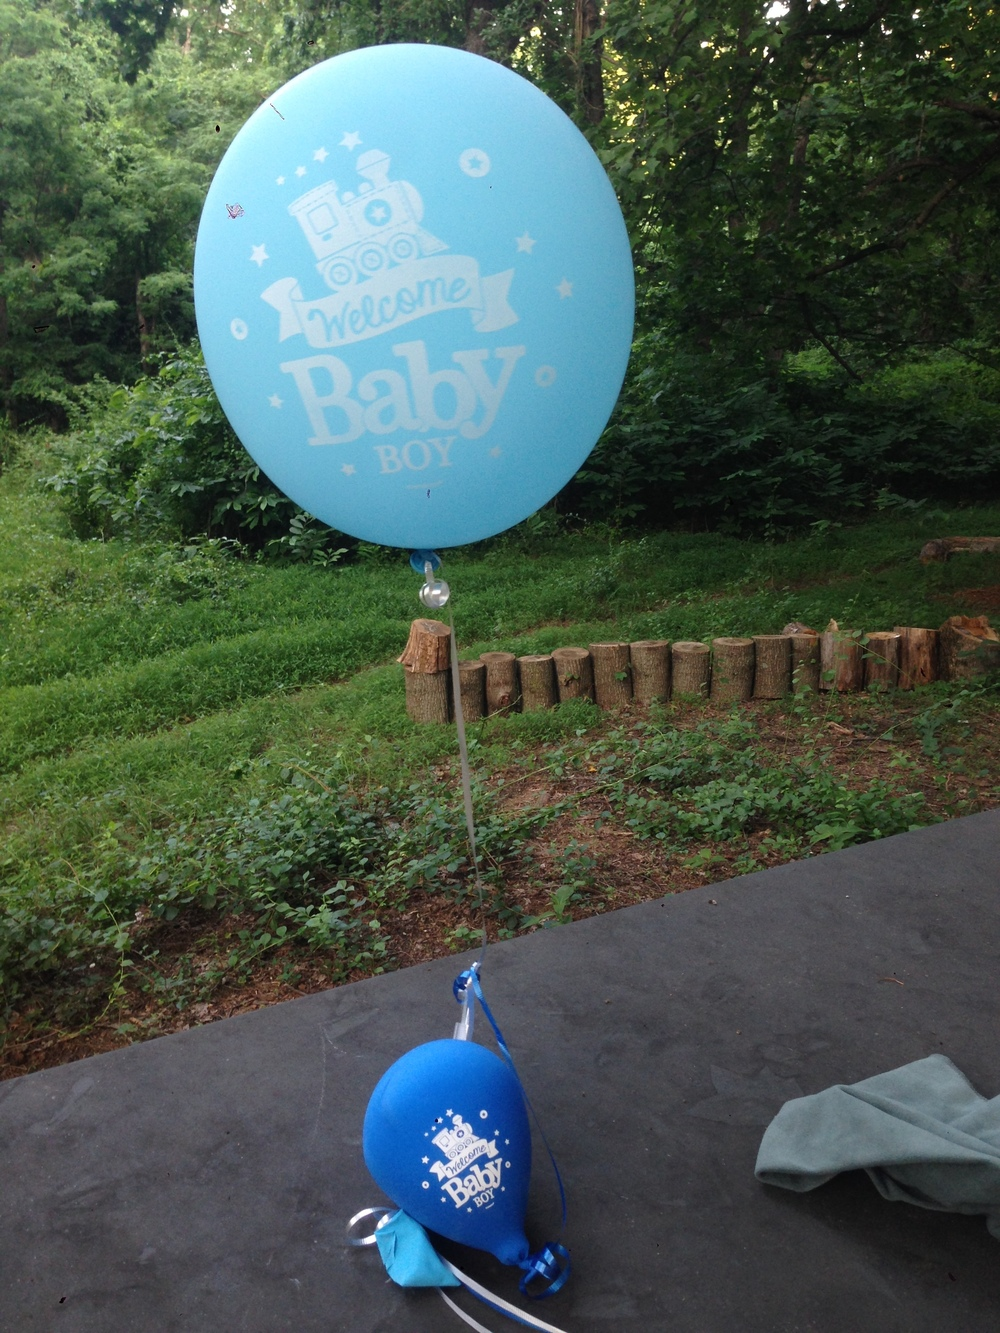 This balloon randomly showed up on our property a few weeks ago...maybe nature was hosting a baby shower?  At any rate it got it right, and we're pleased to have the built-in announcement!